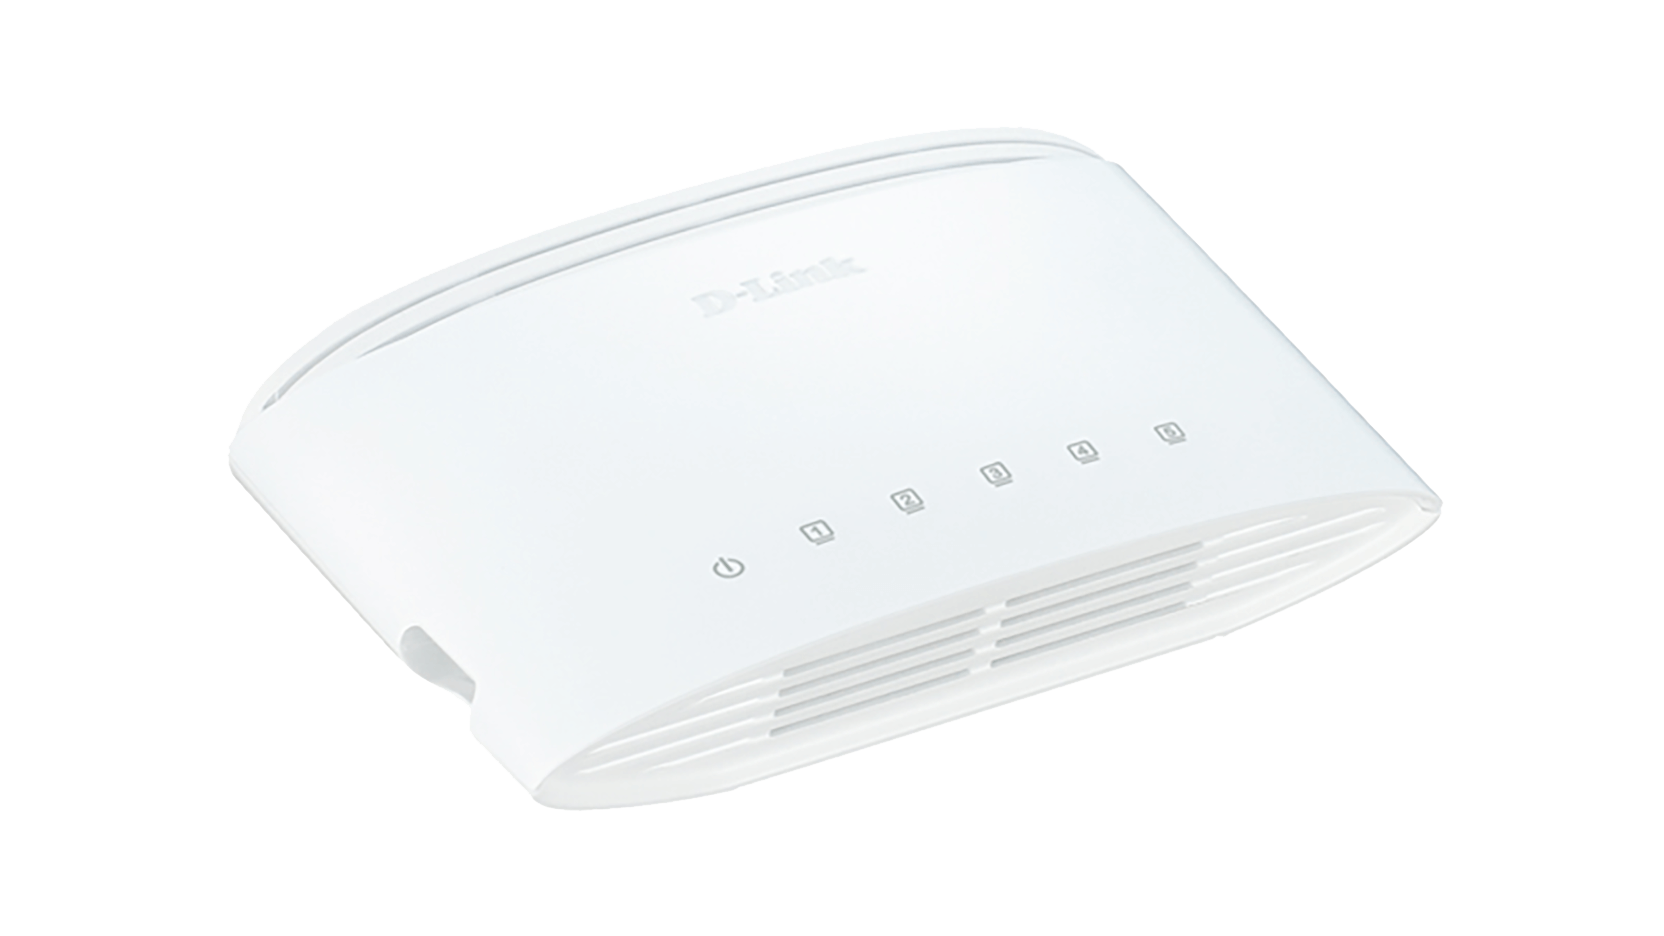 Switch D-Link, DGS‑1005D Gigabit, e bardhë